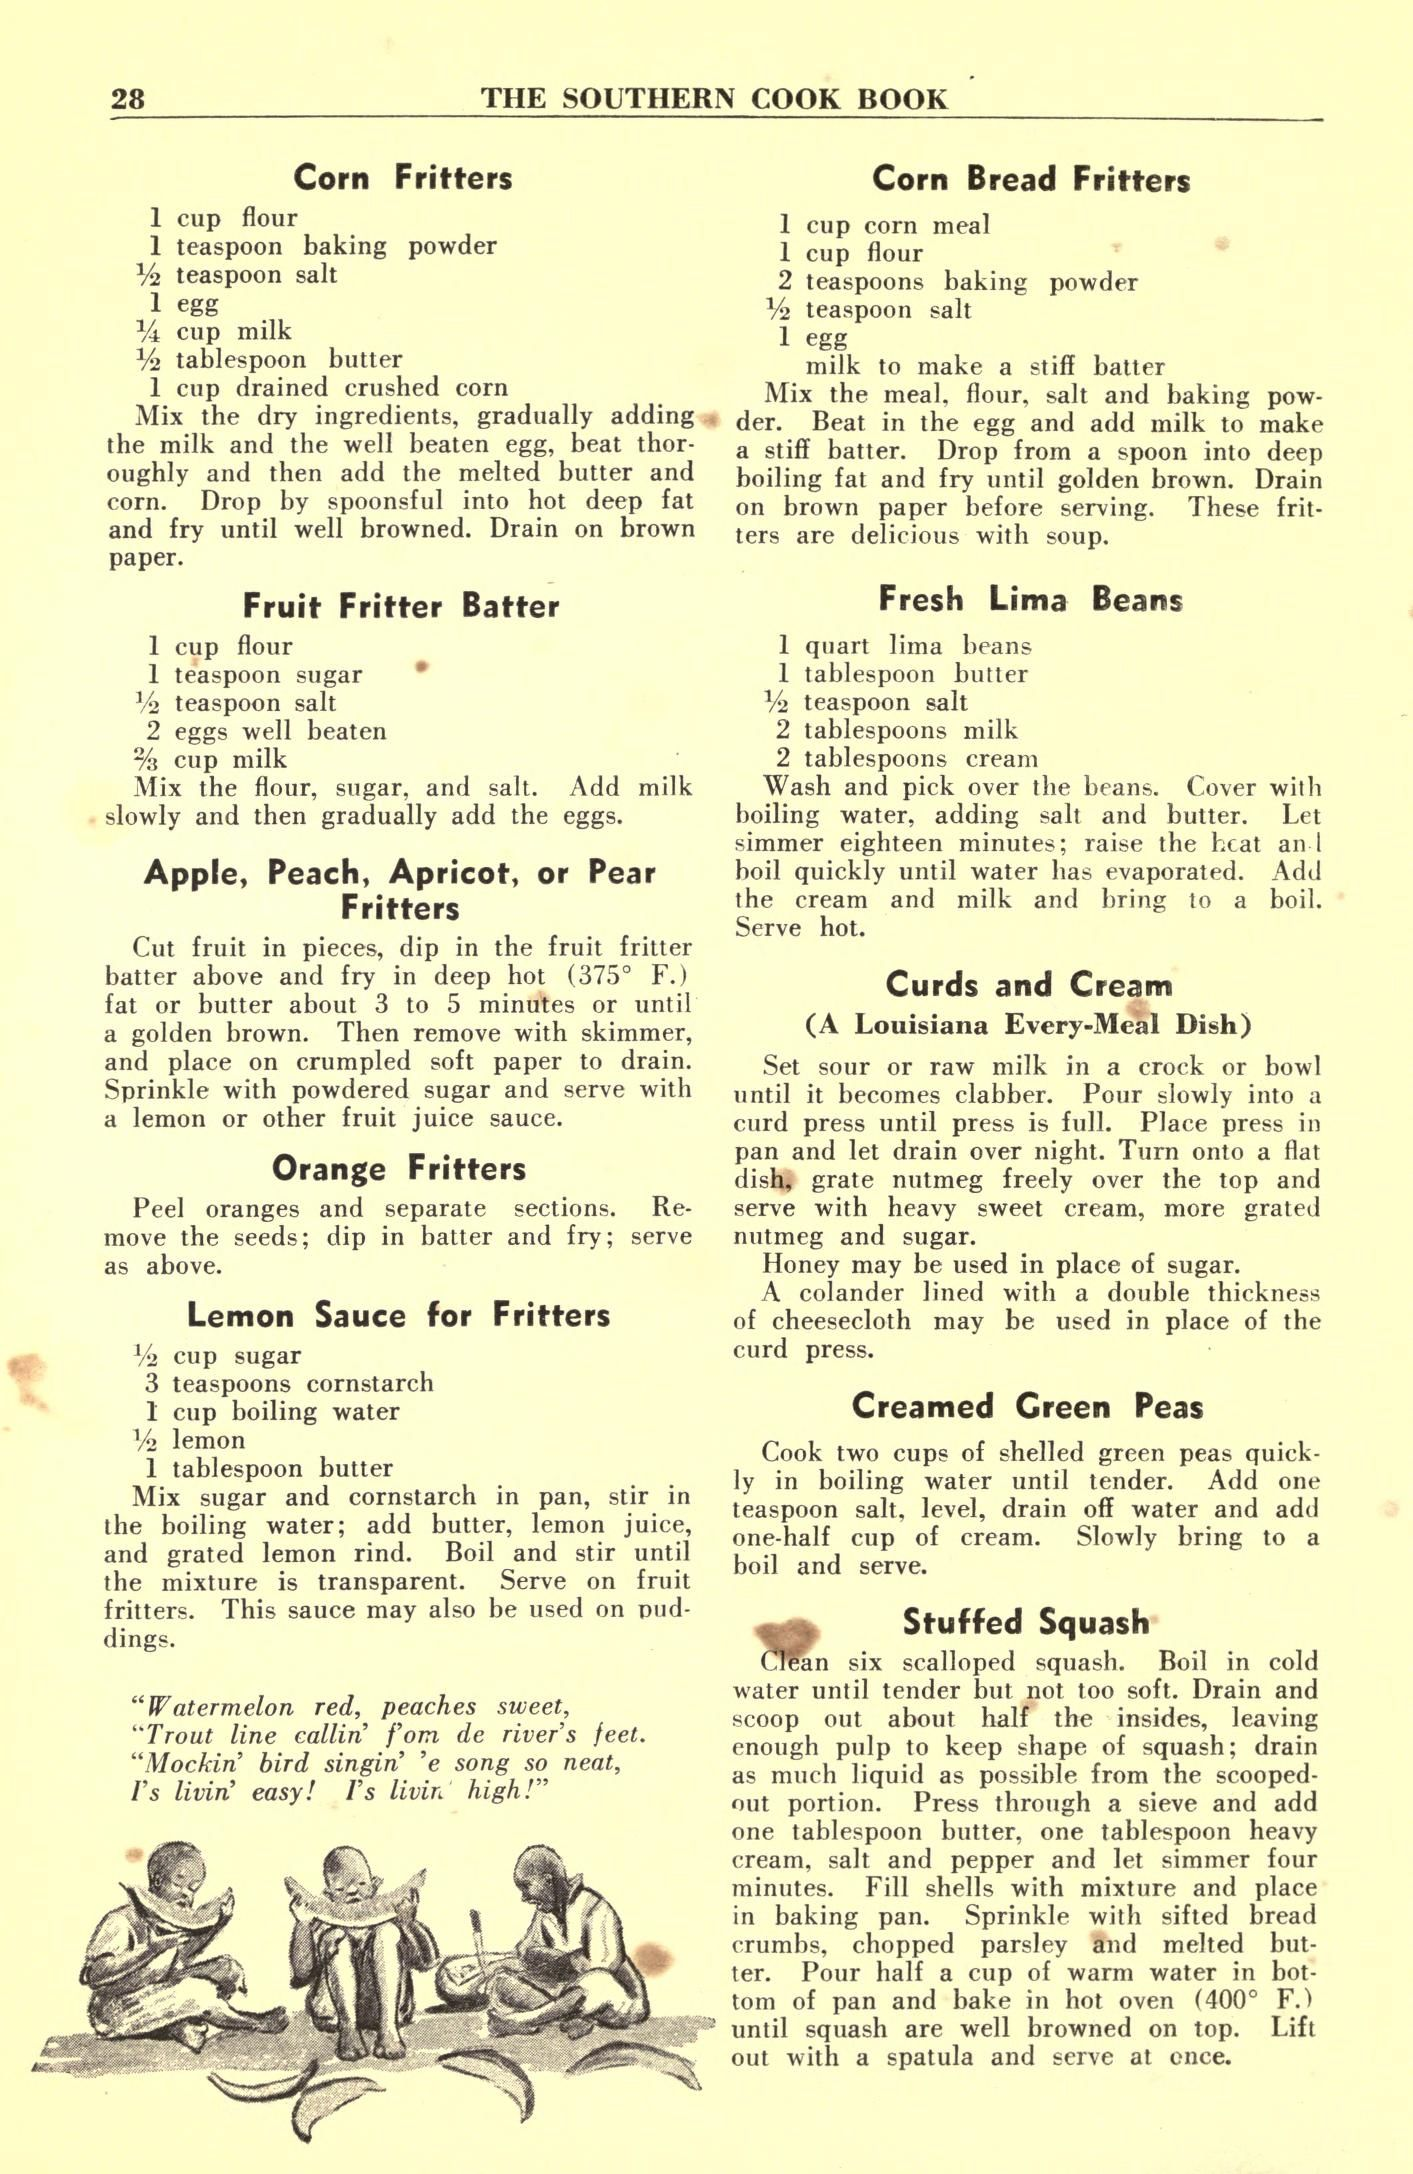 Photo of The Southern cook book of fine old recipes : Lustig, Lillie S, ed : Free Download, Borrow, and Streaming : Internet Archive